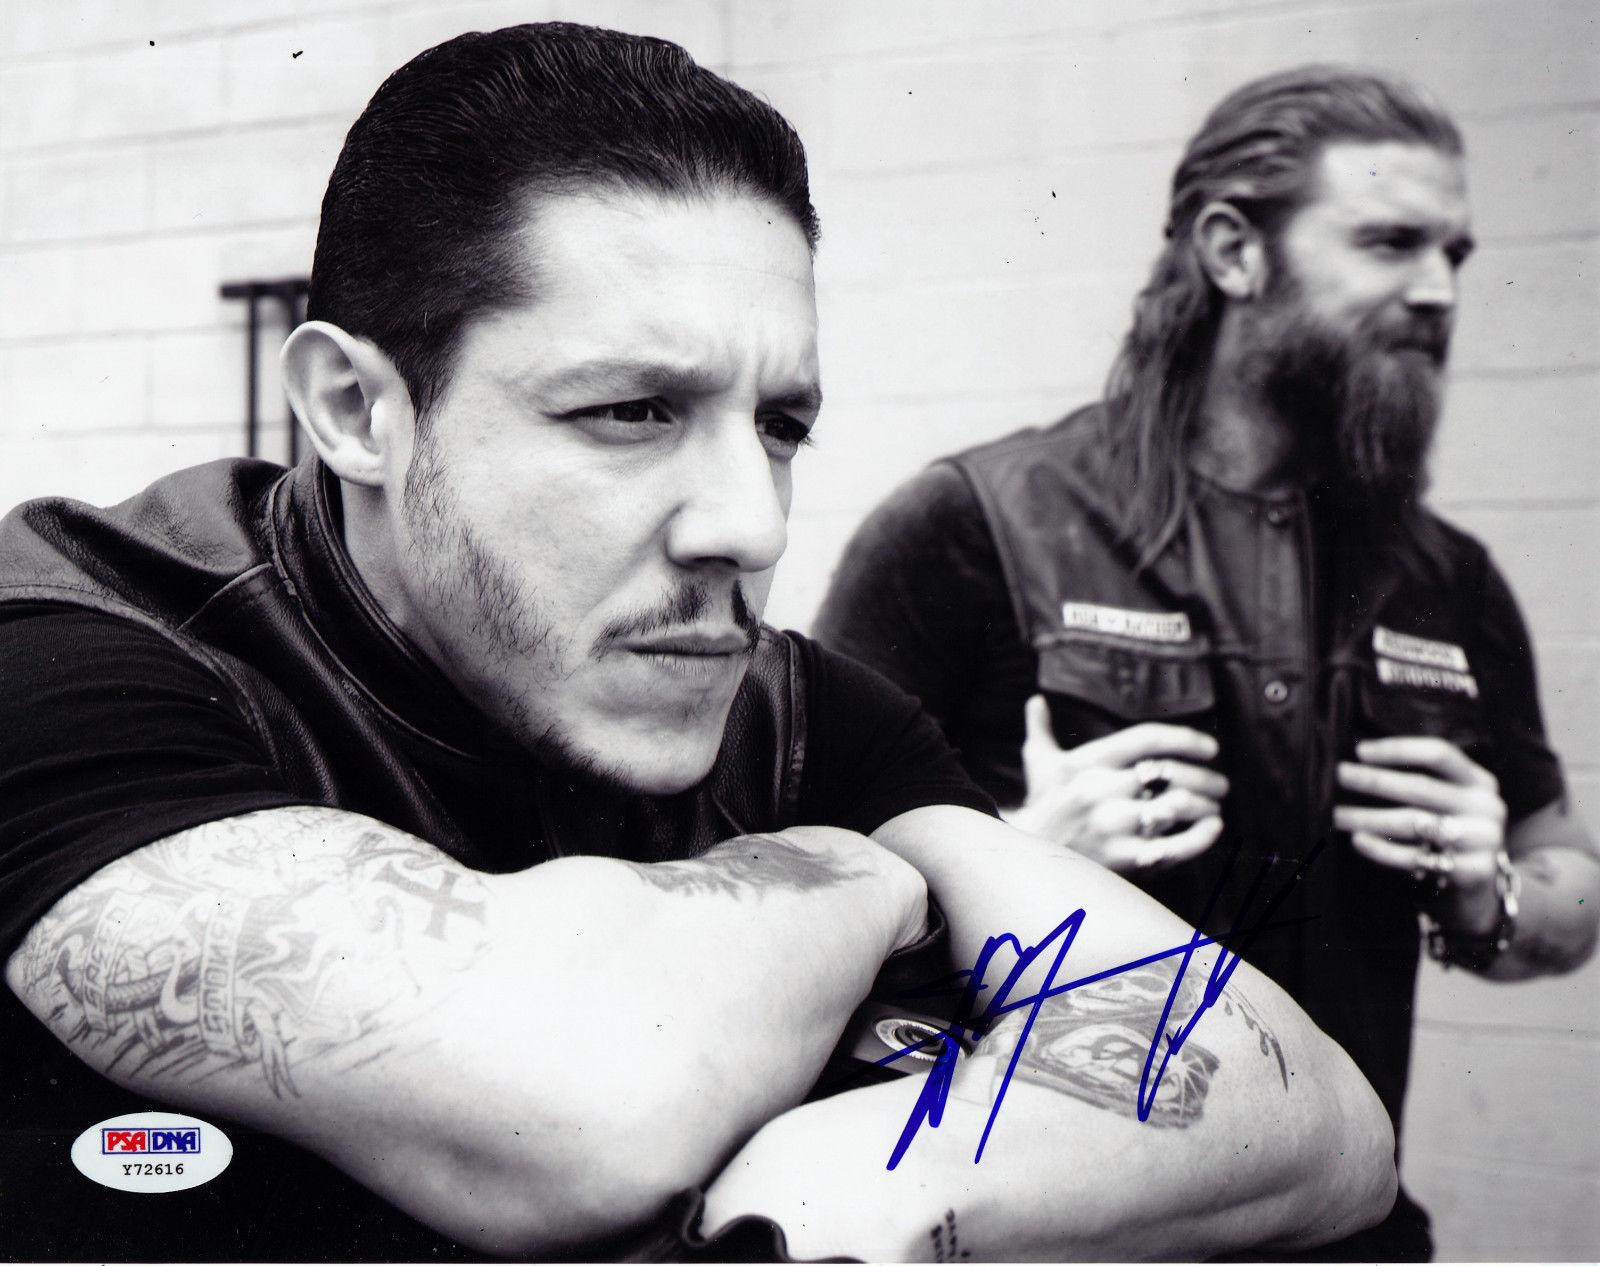 Ryan Hurst Signed 8x10 Photo w/PSA DNA Opie Sons of Anarchy Y72616